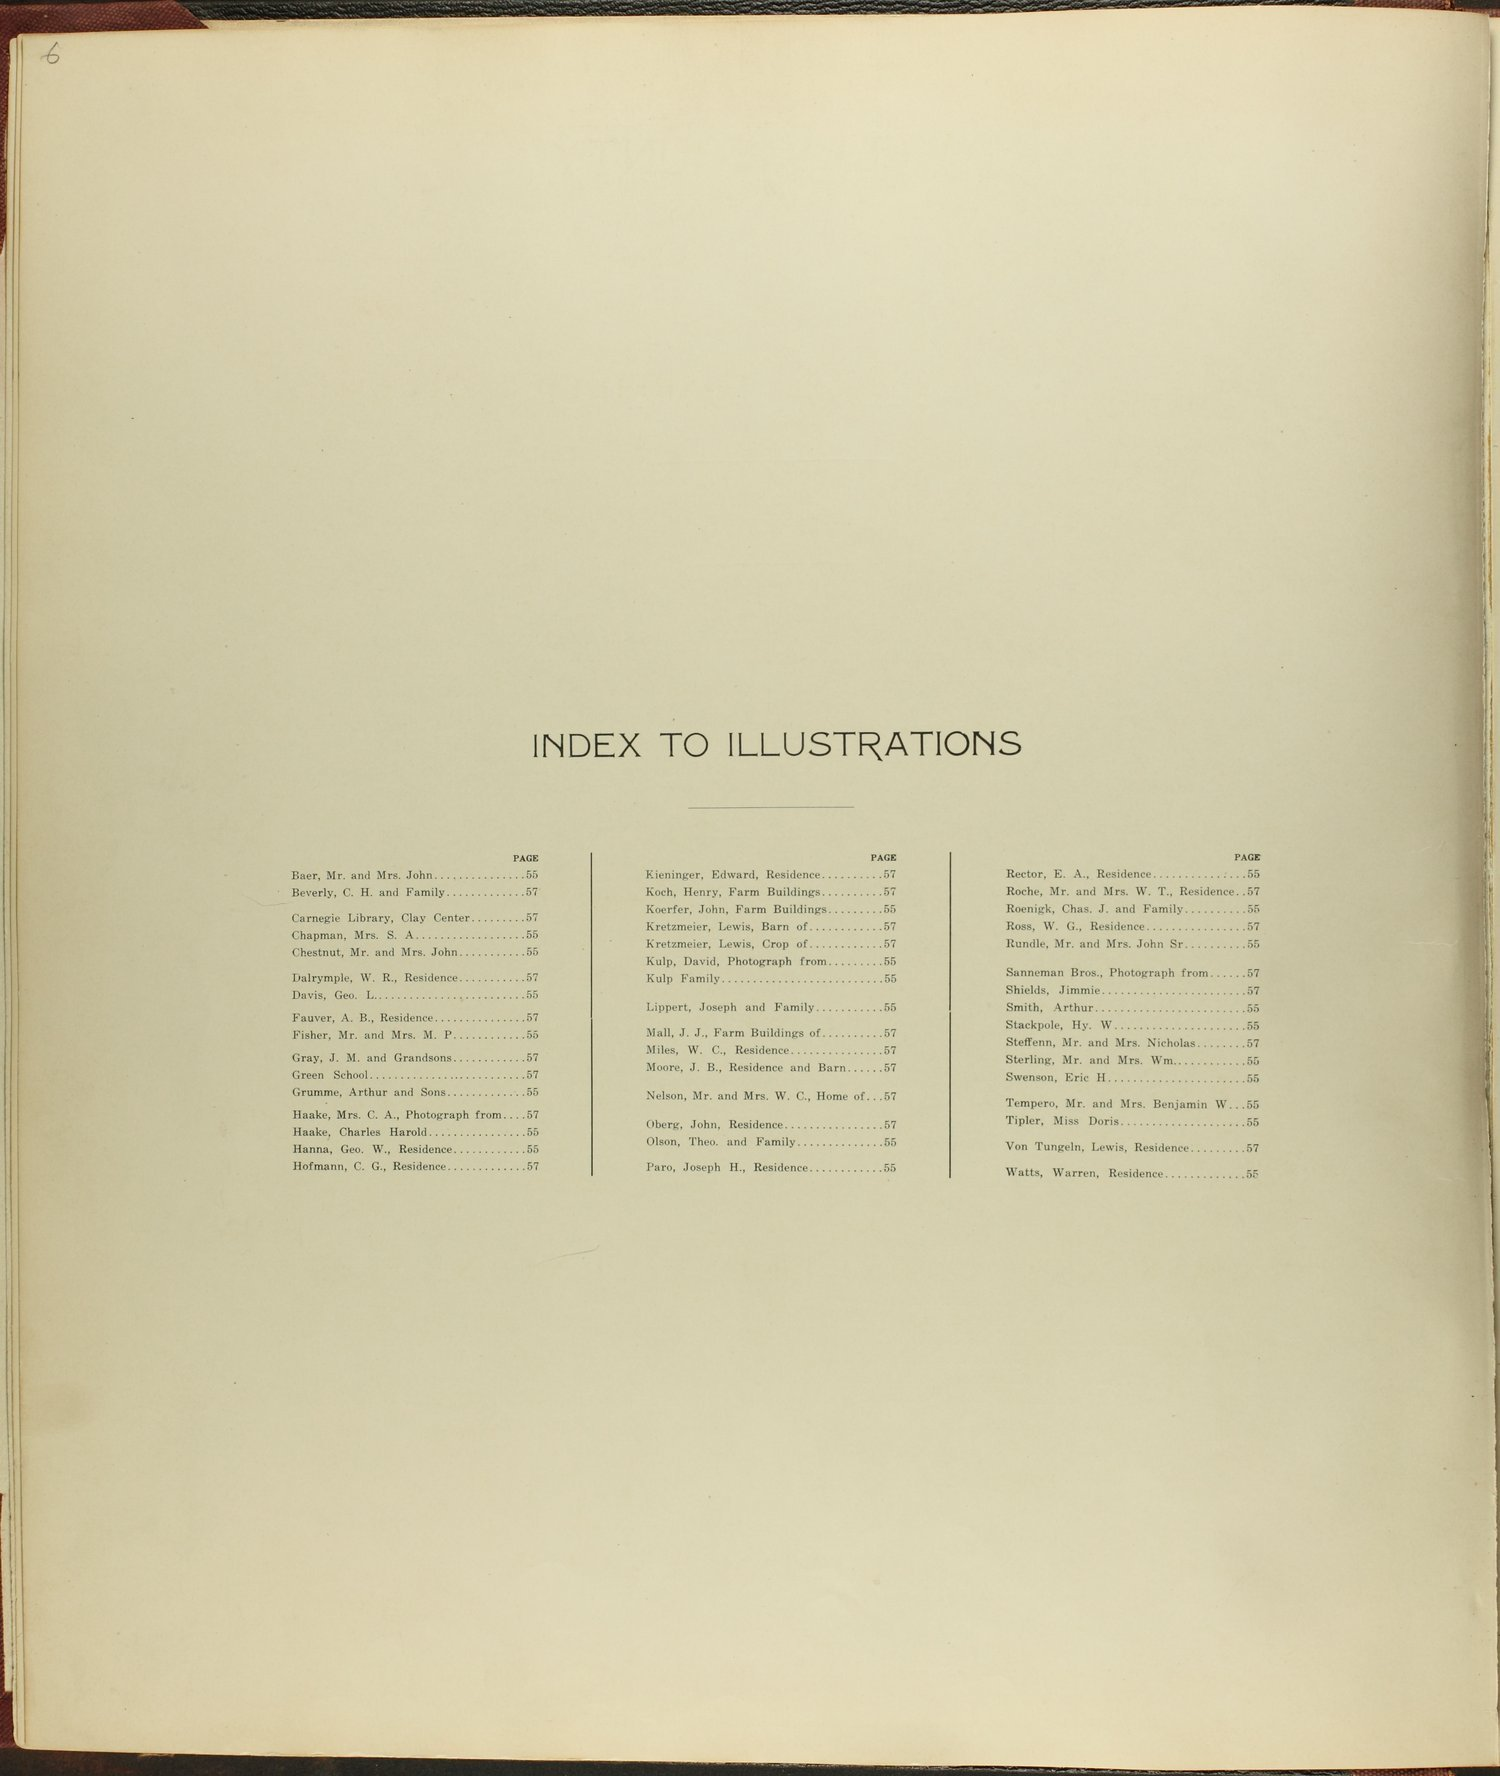 Standard atlas of Clay County, Kansas - Index to Illustrations